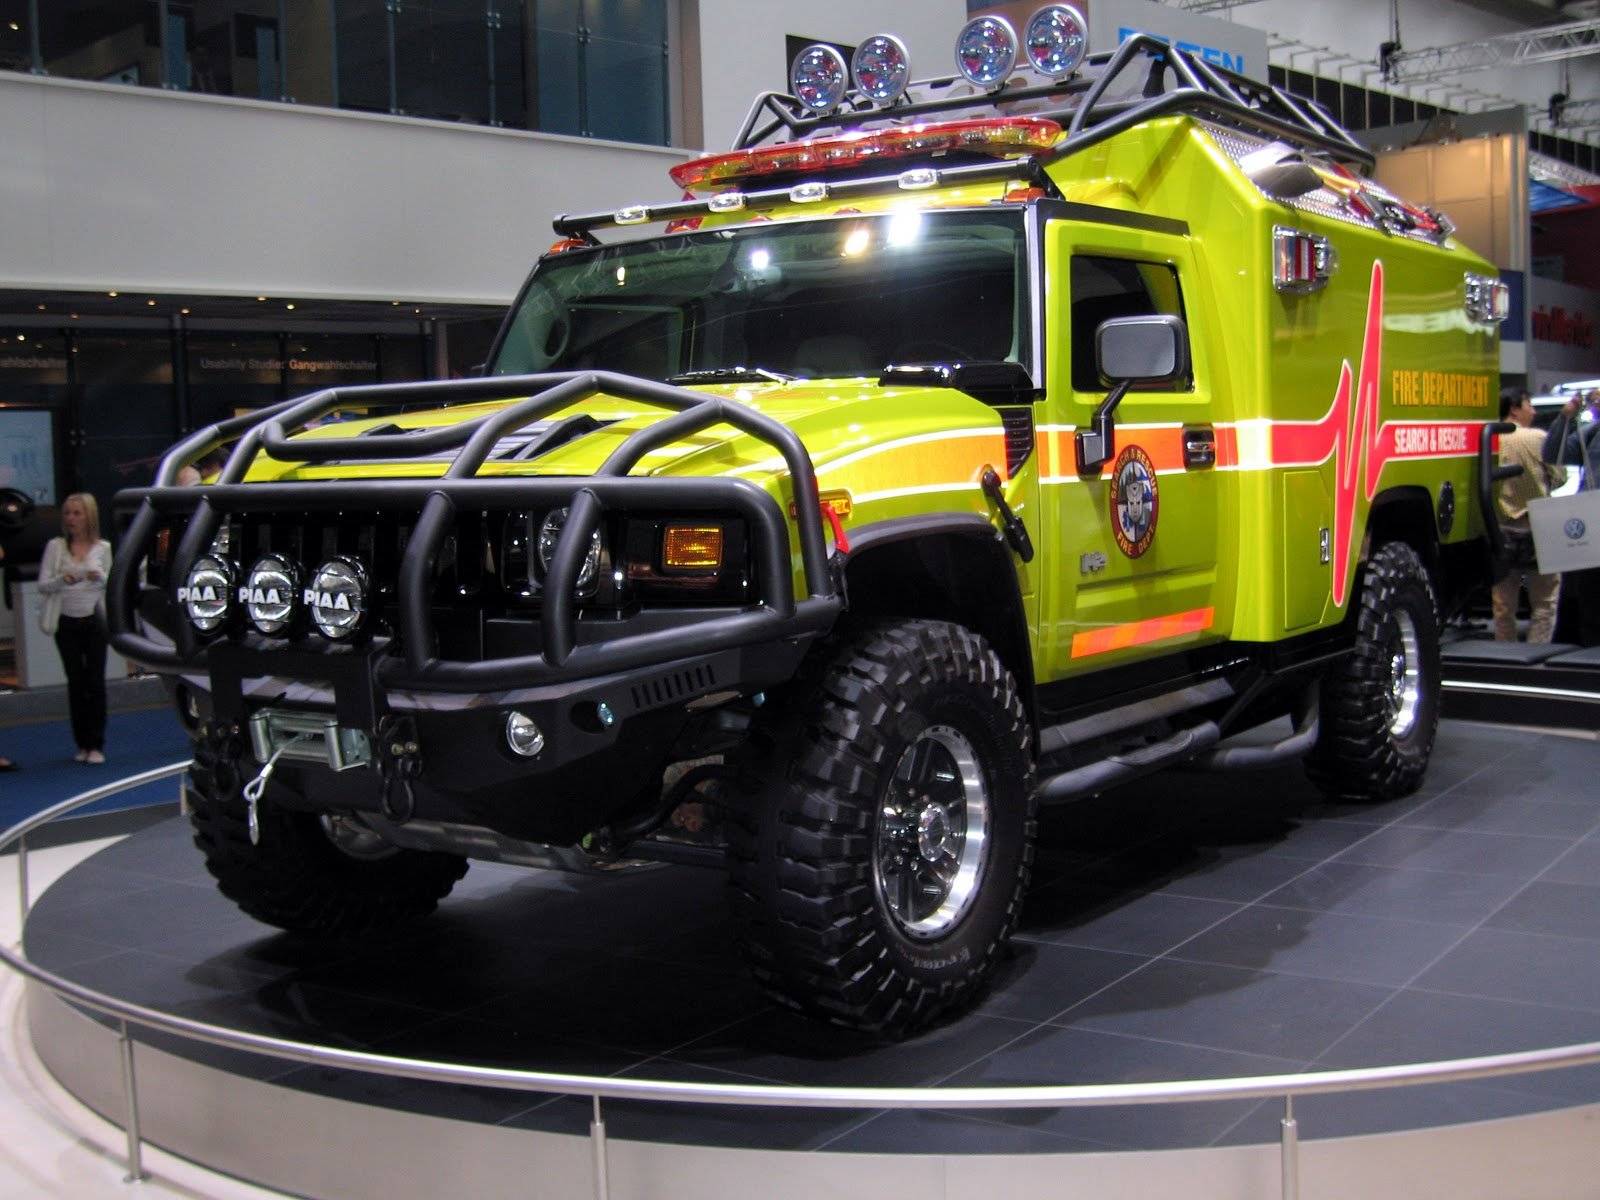 Latest Hummer Cars The Car Club Free Download